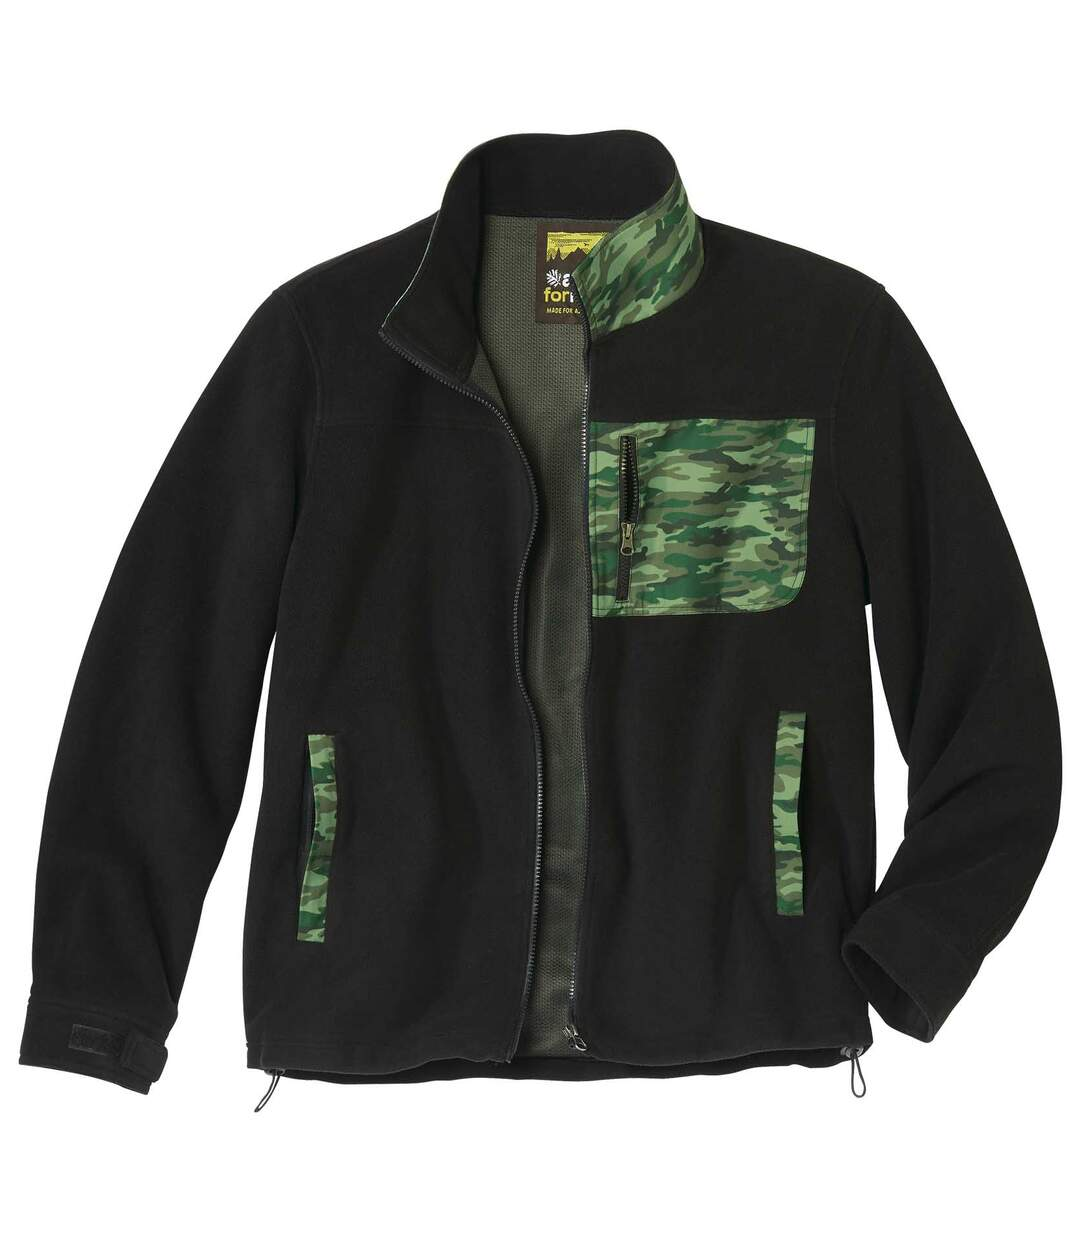 Men's Black Camouflage Fleece Jacket - Full Zip